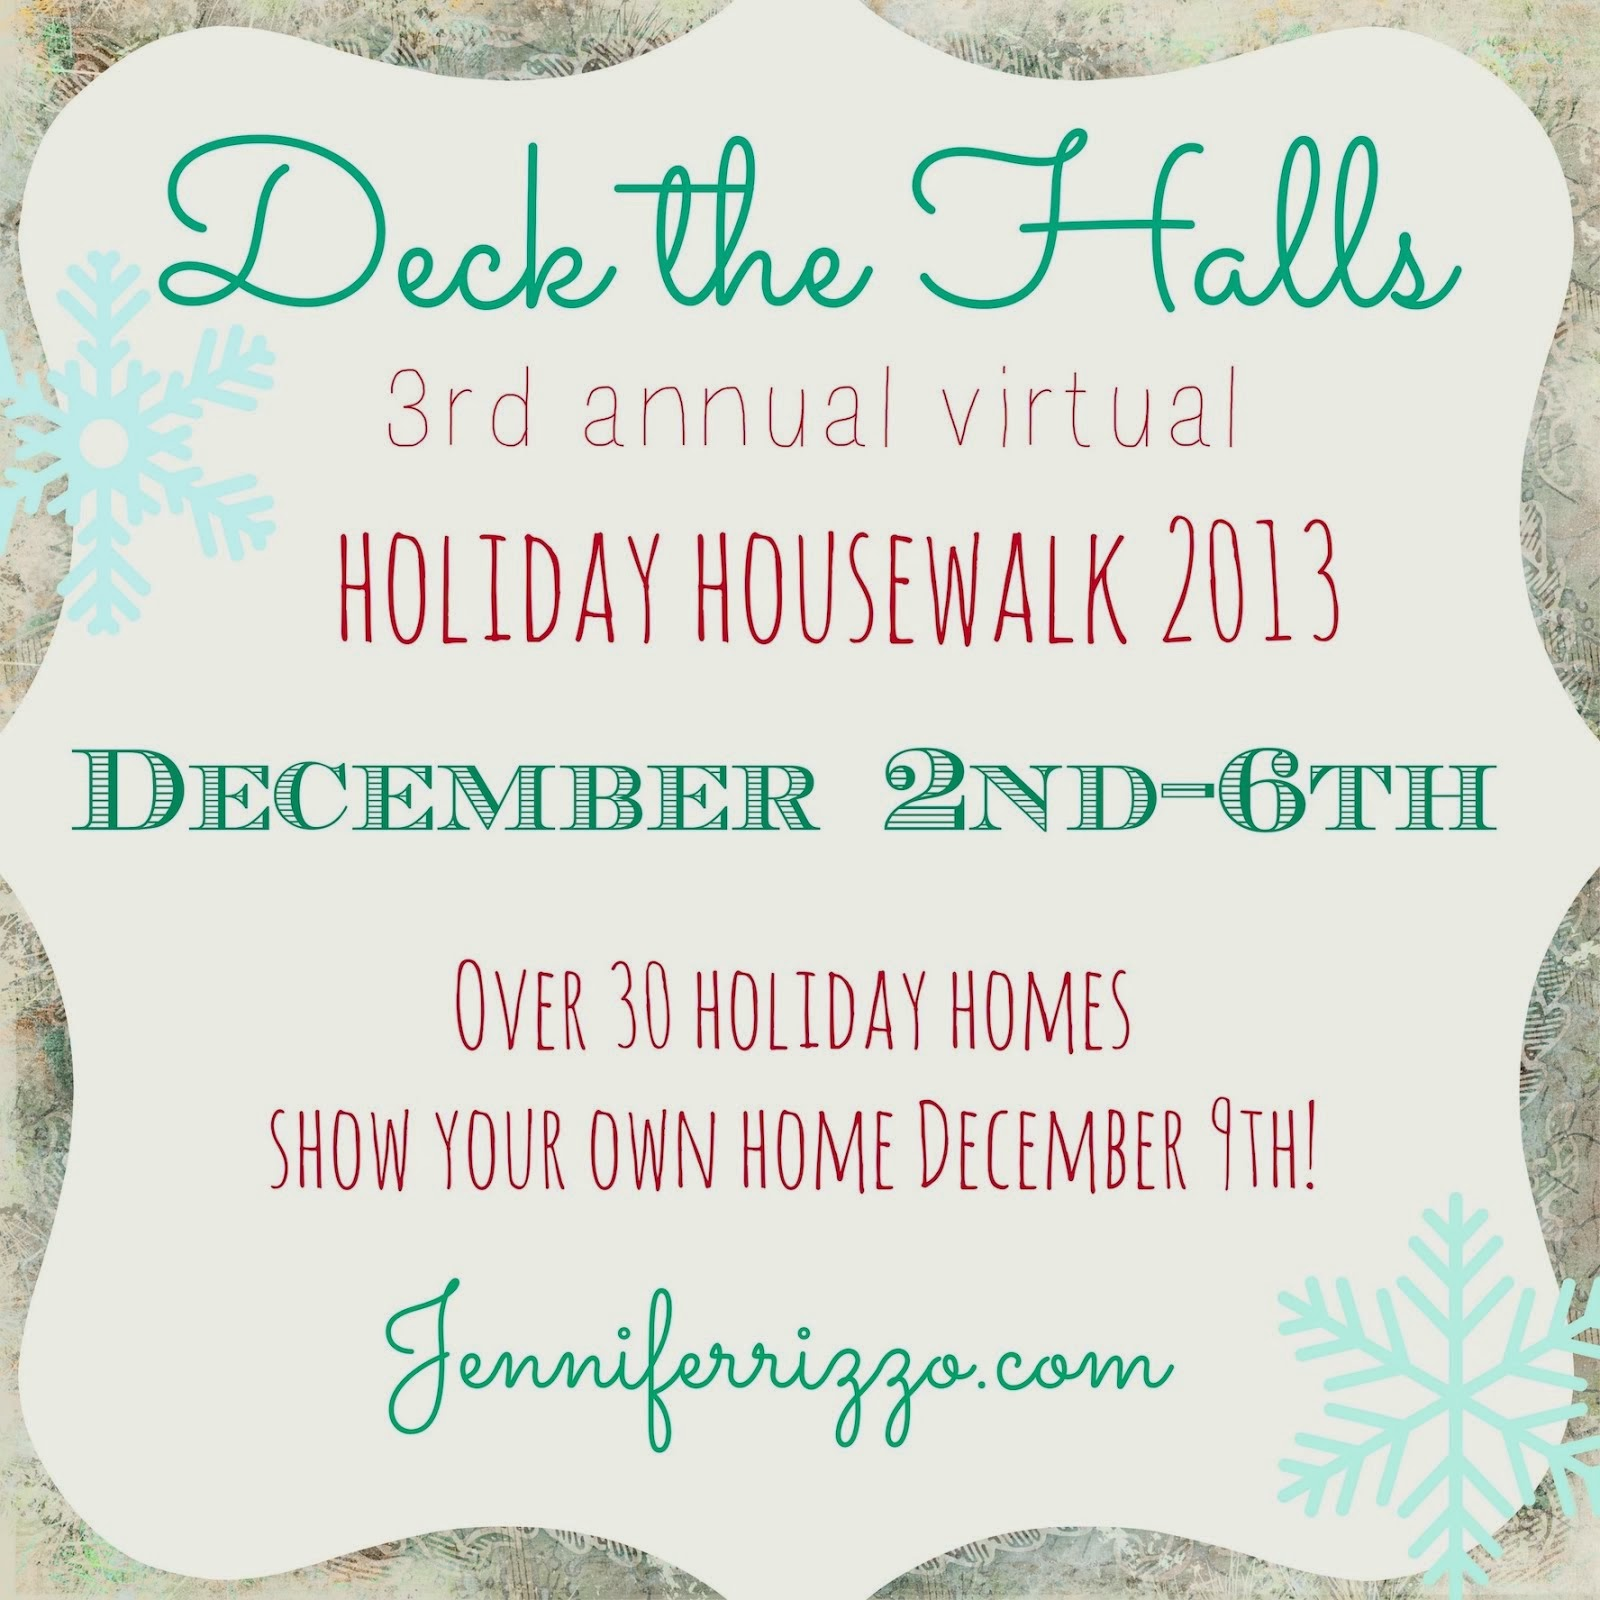 deck the halls holiday house walk!